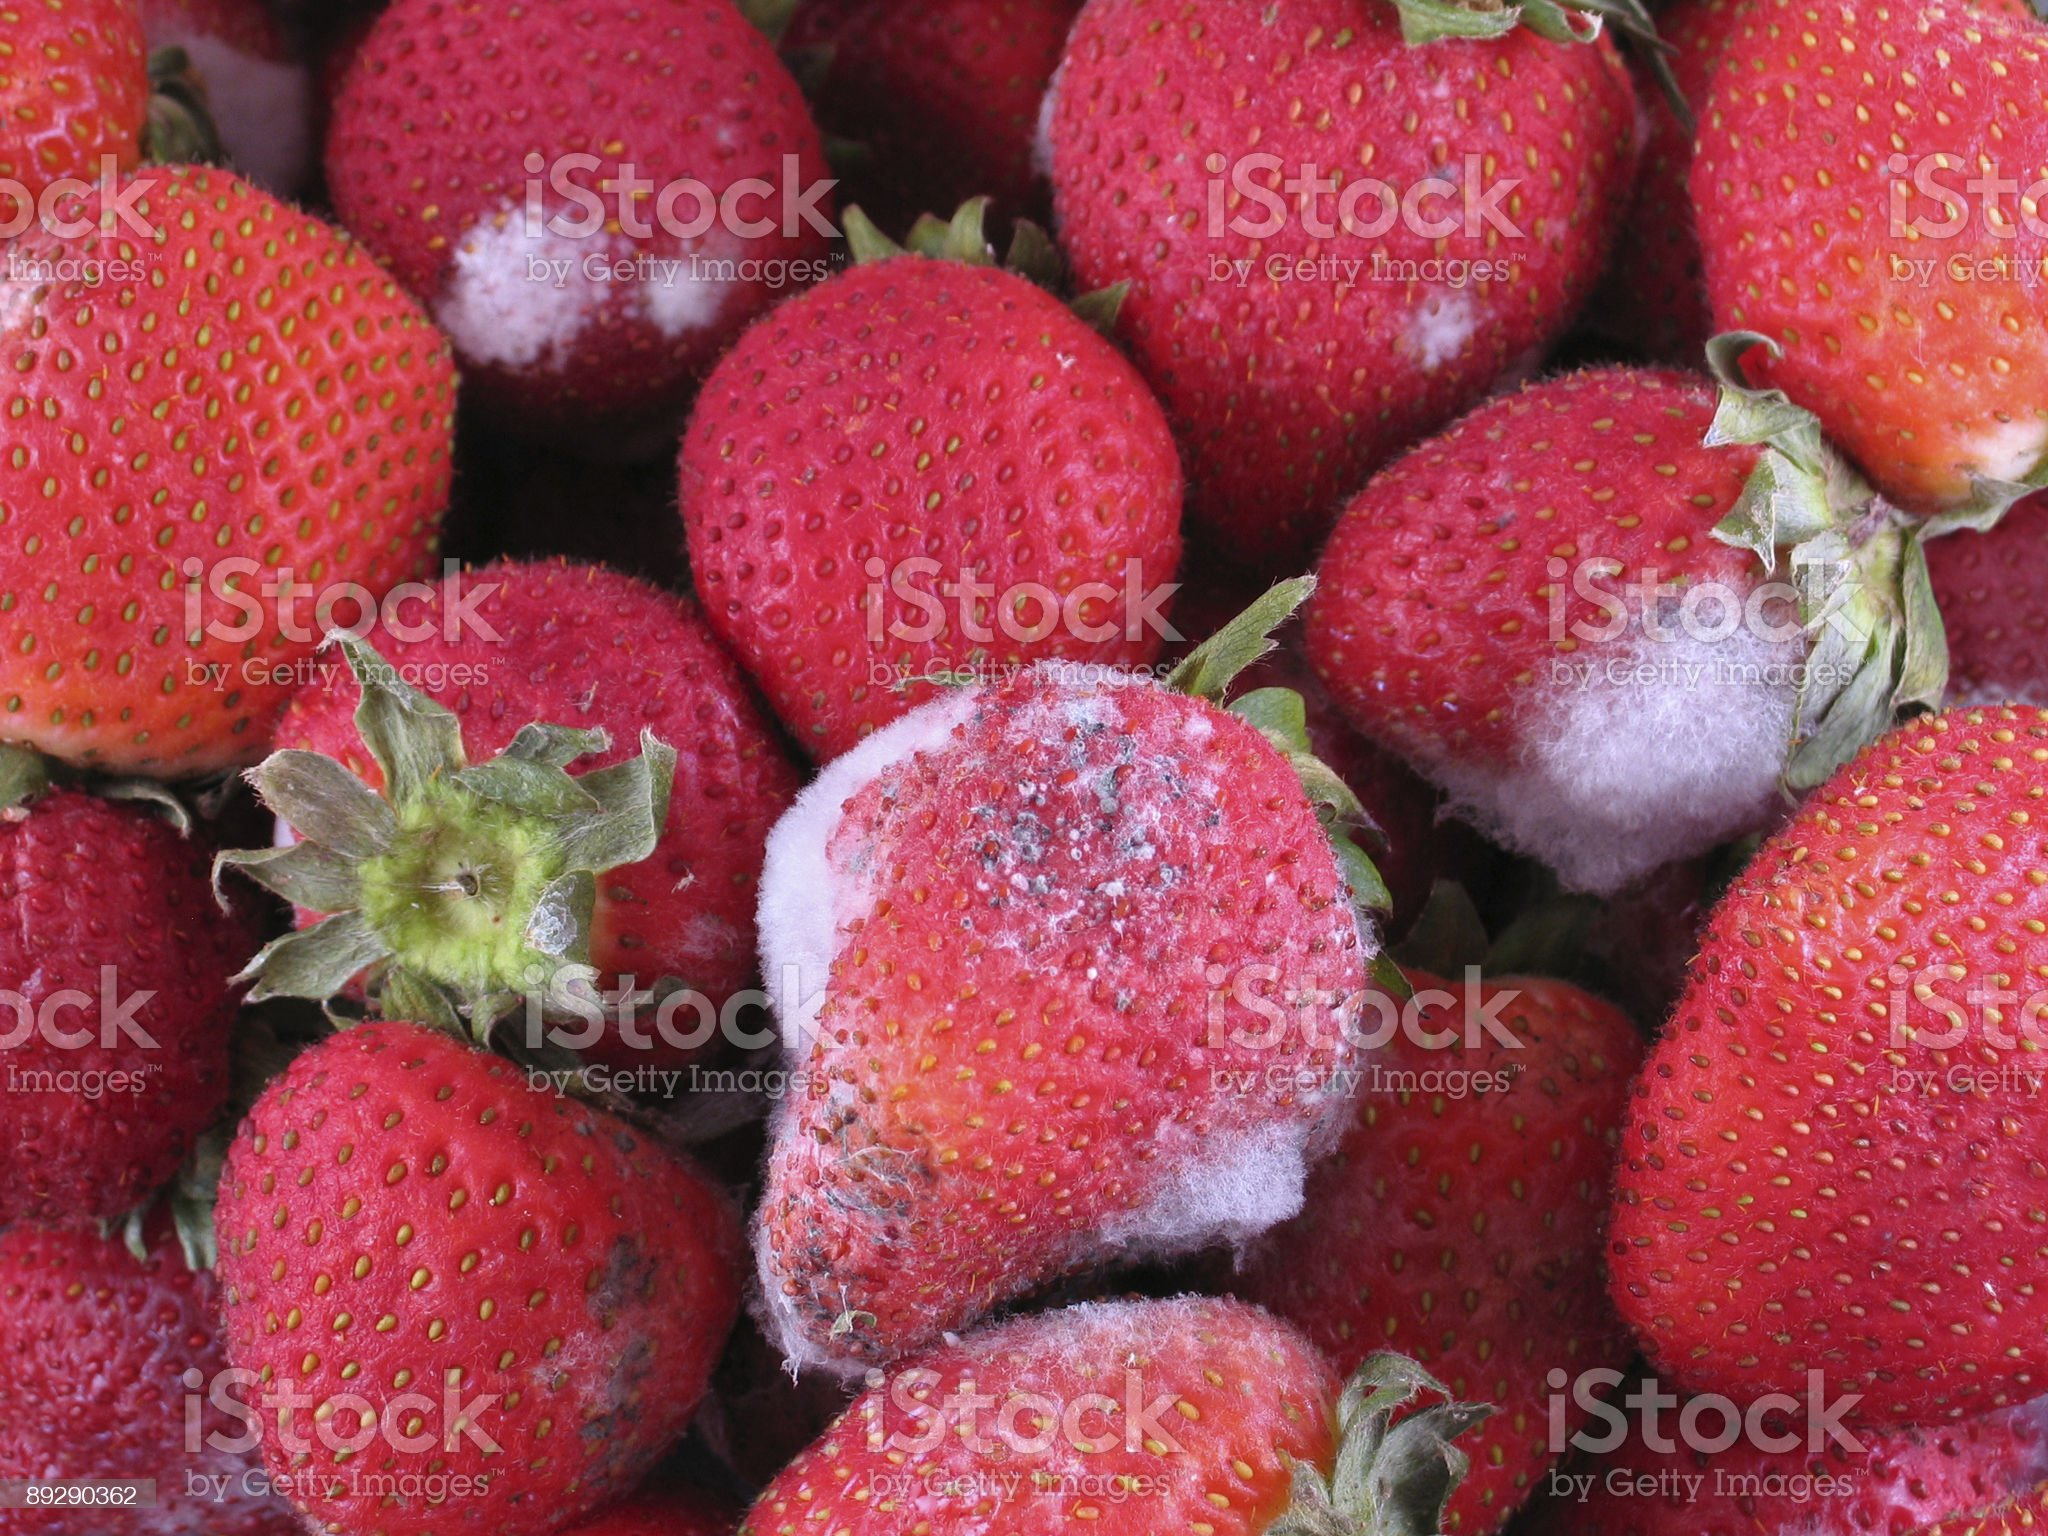 Moldy Strawberries | Mold on Fruit royalty-free stock photo